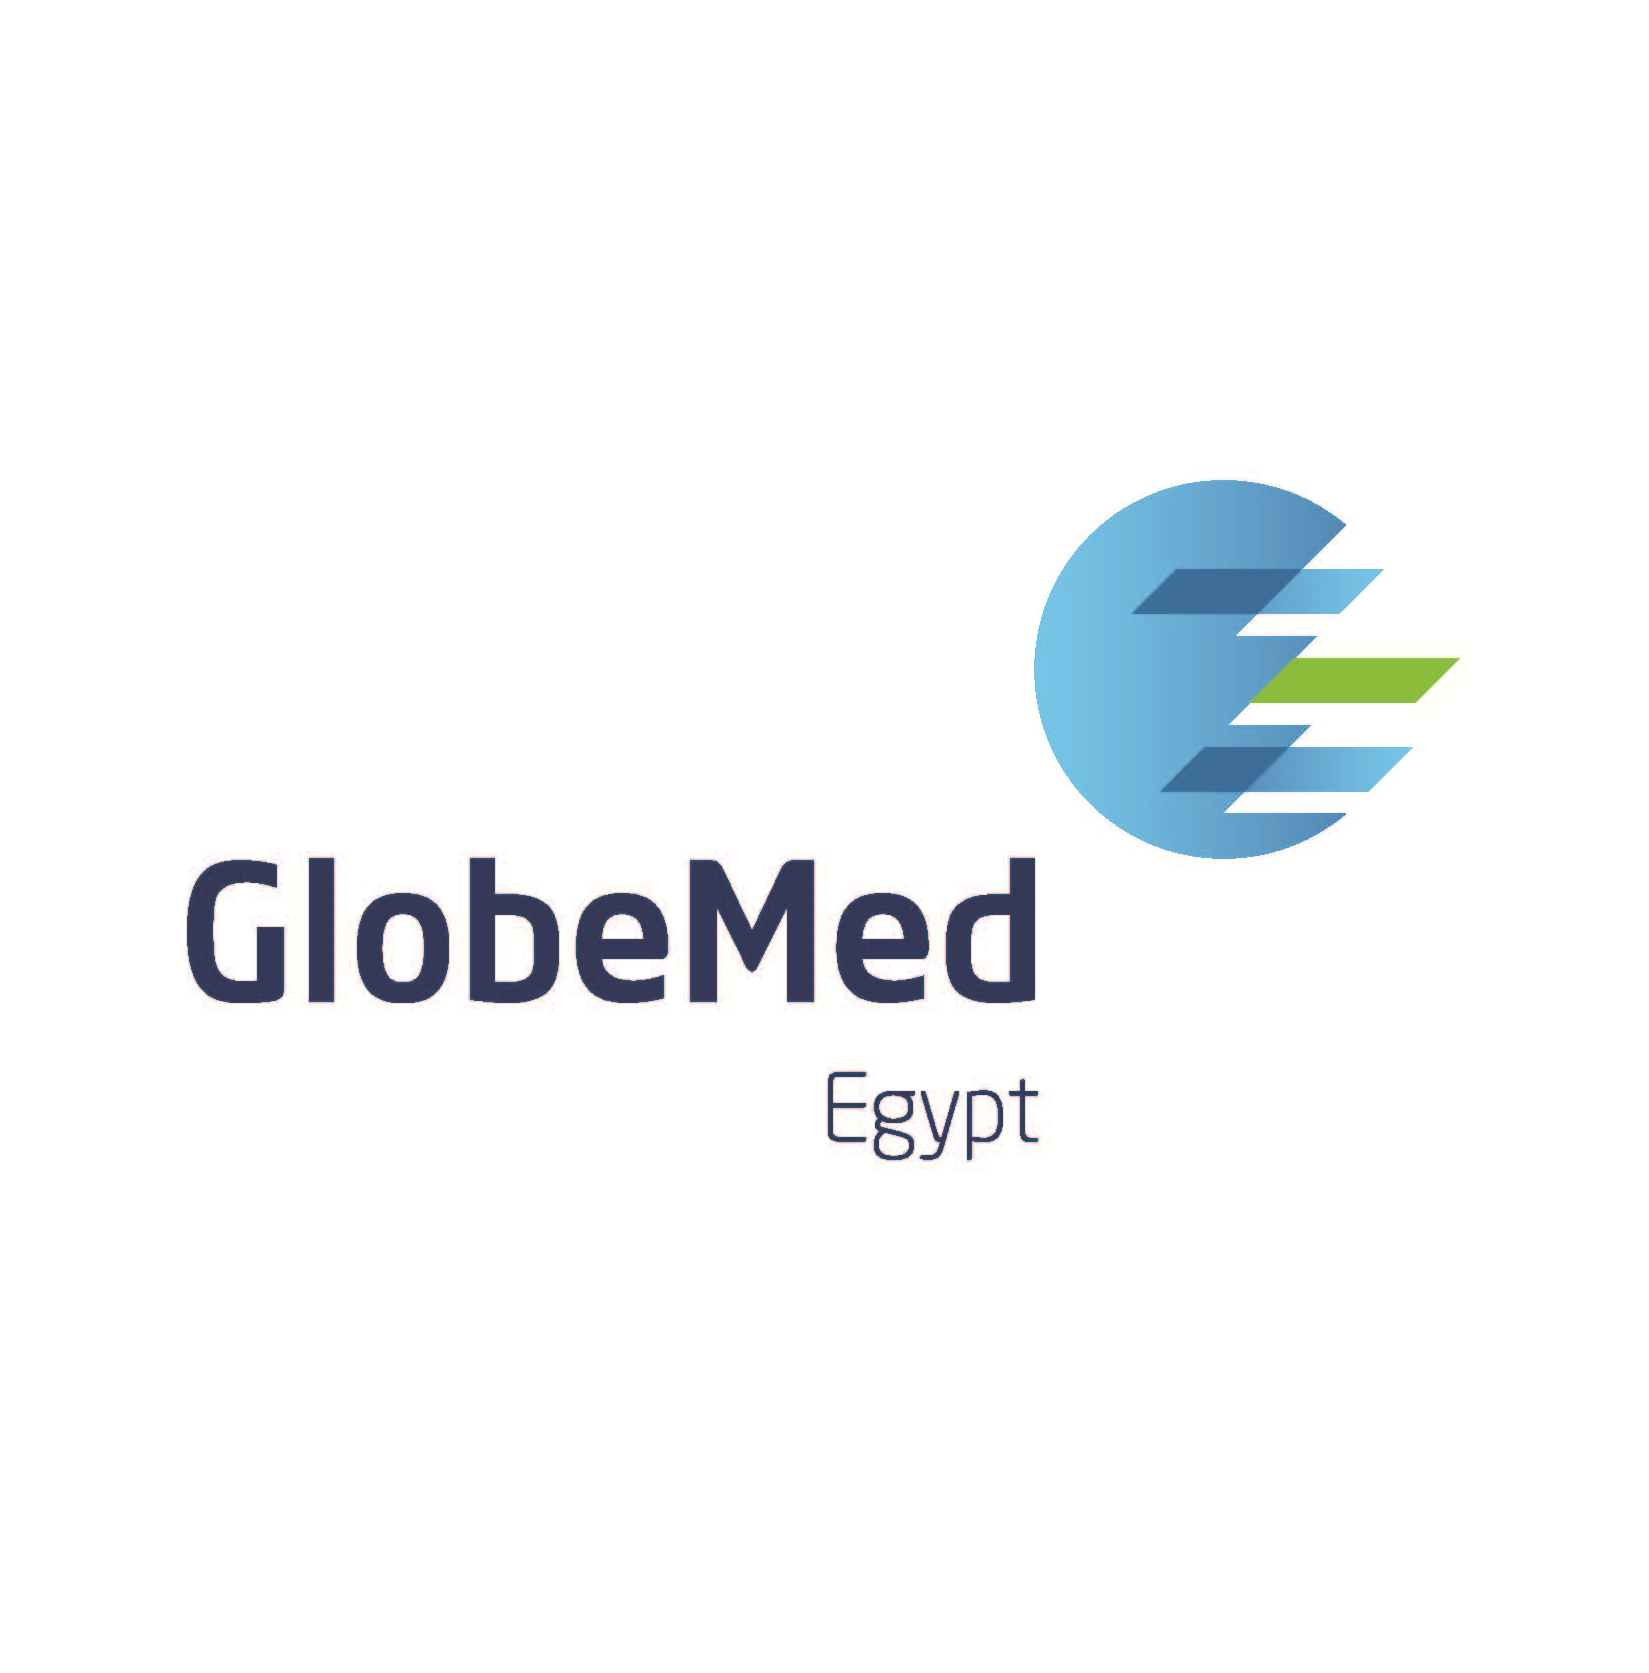 https://forum.facmedicine.com/jobs/company/globemed-egypt